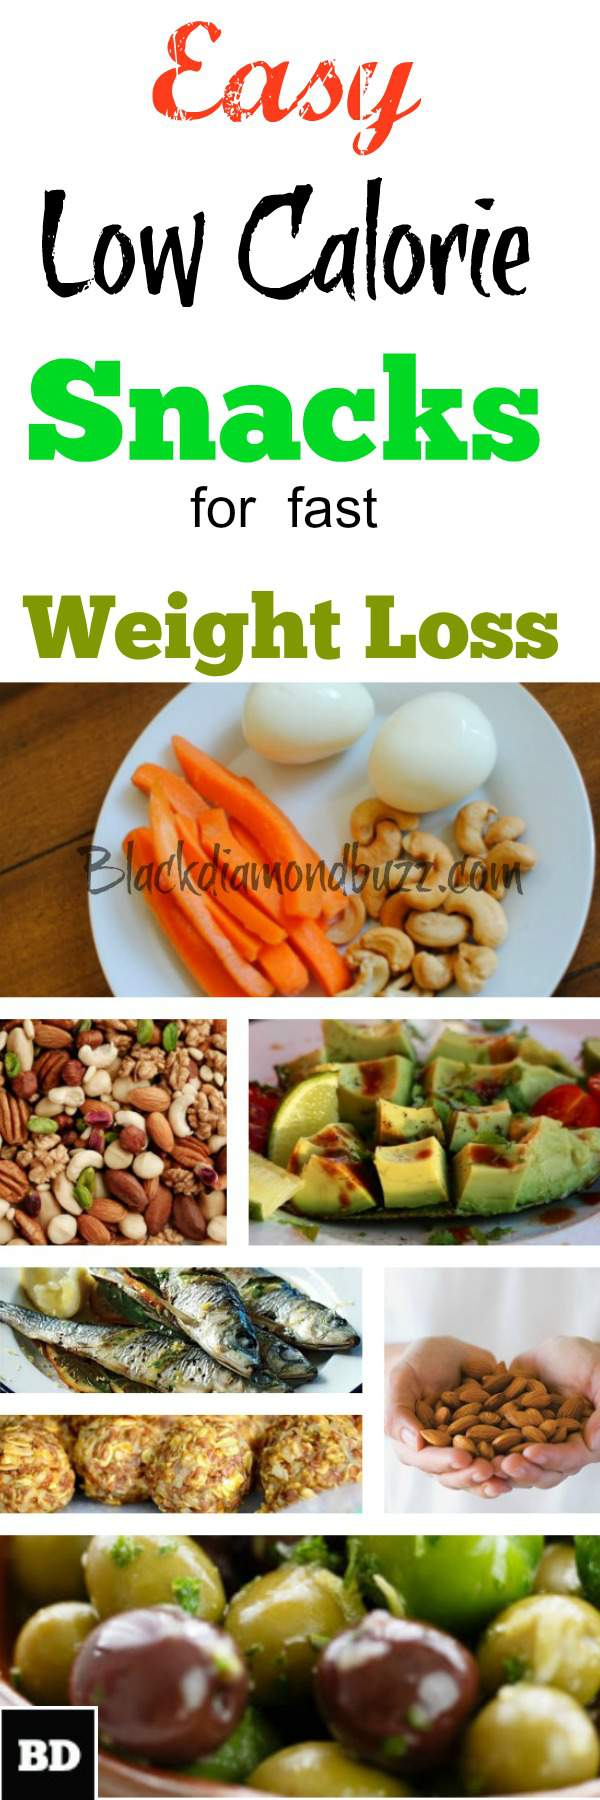 What is the best snacks for weight loss